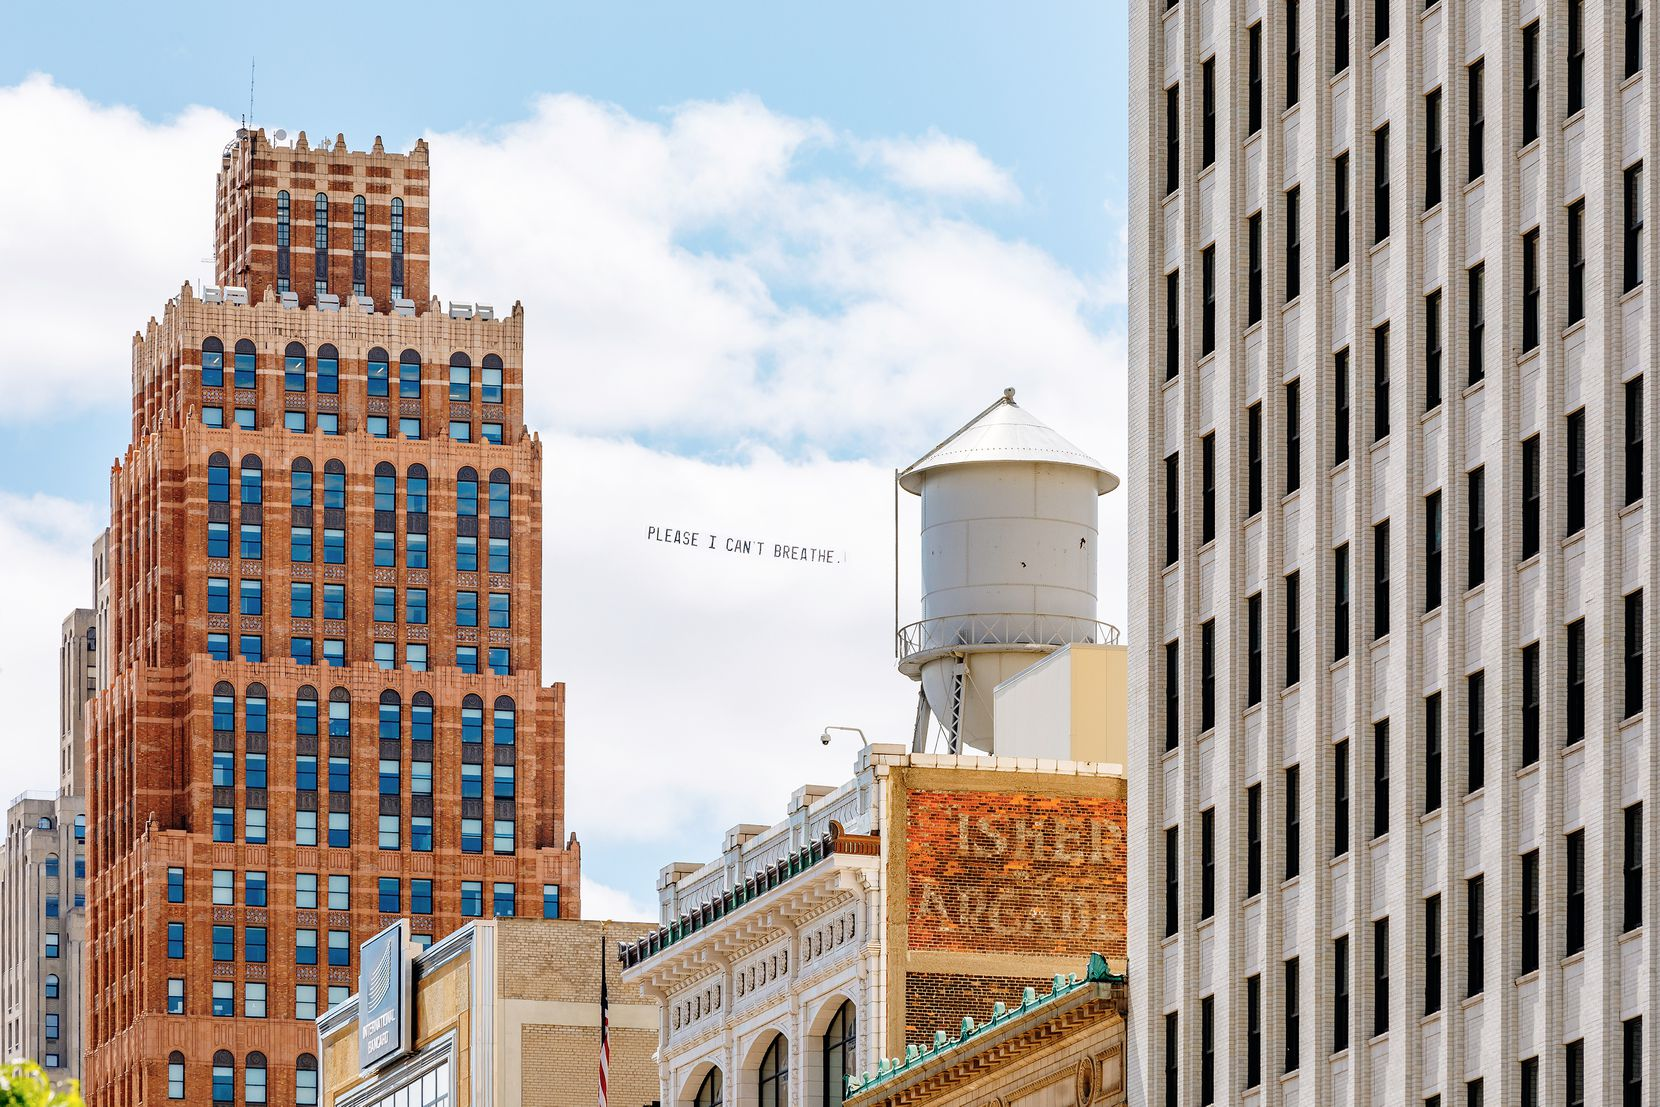 """A banner reading """"Please I can't breathe,"""" which were among George Floyd's last words, trails behind a plane flying over Detroit as part of an artwork by Dallas artist Jammie Holmes."""